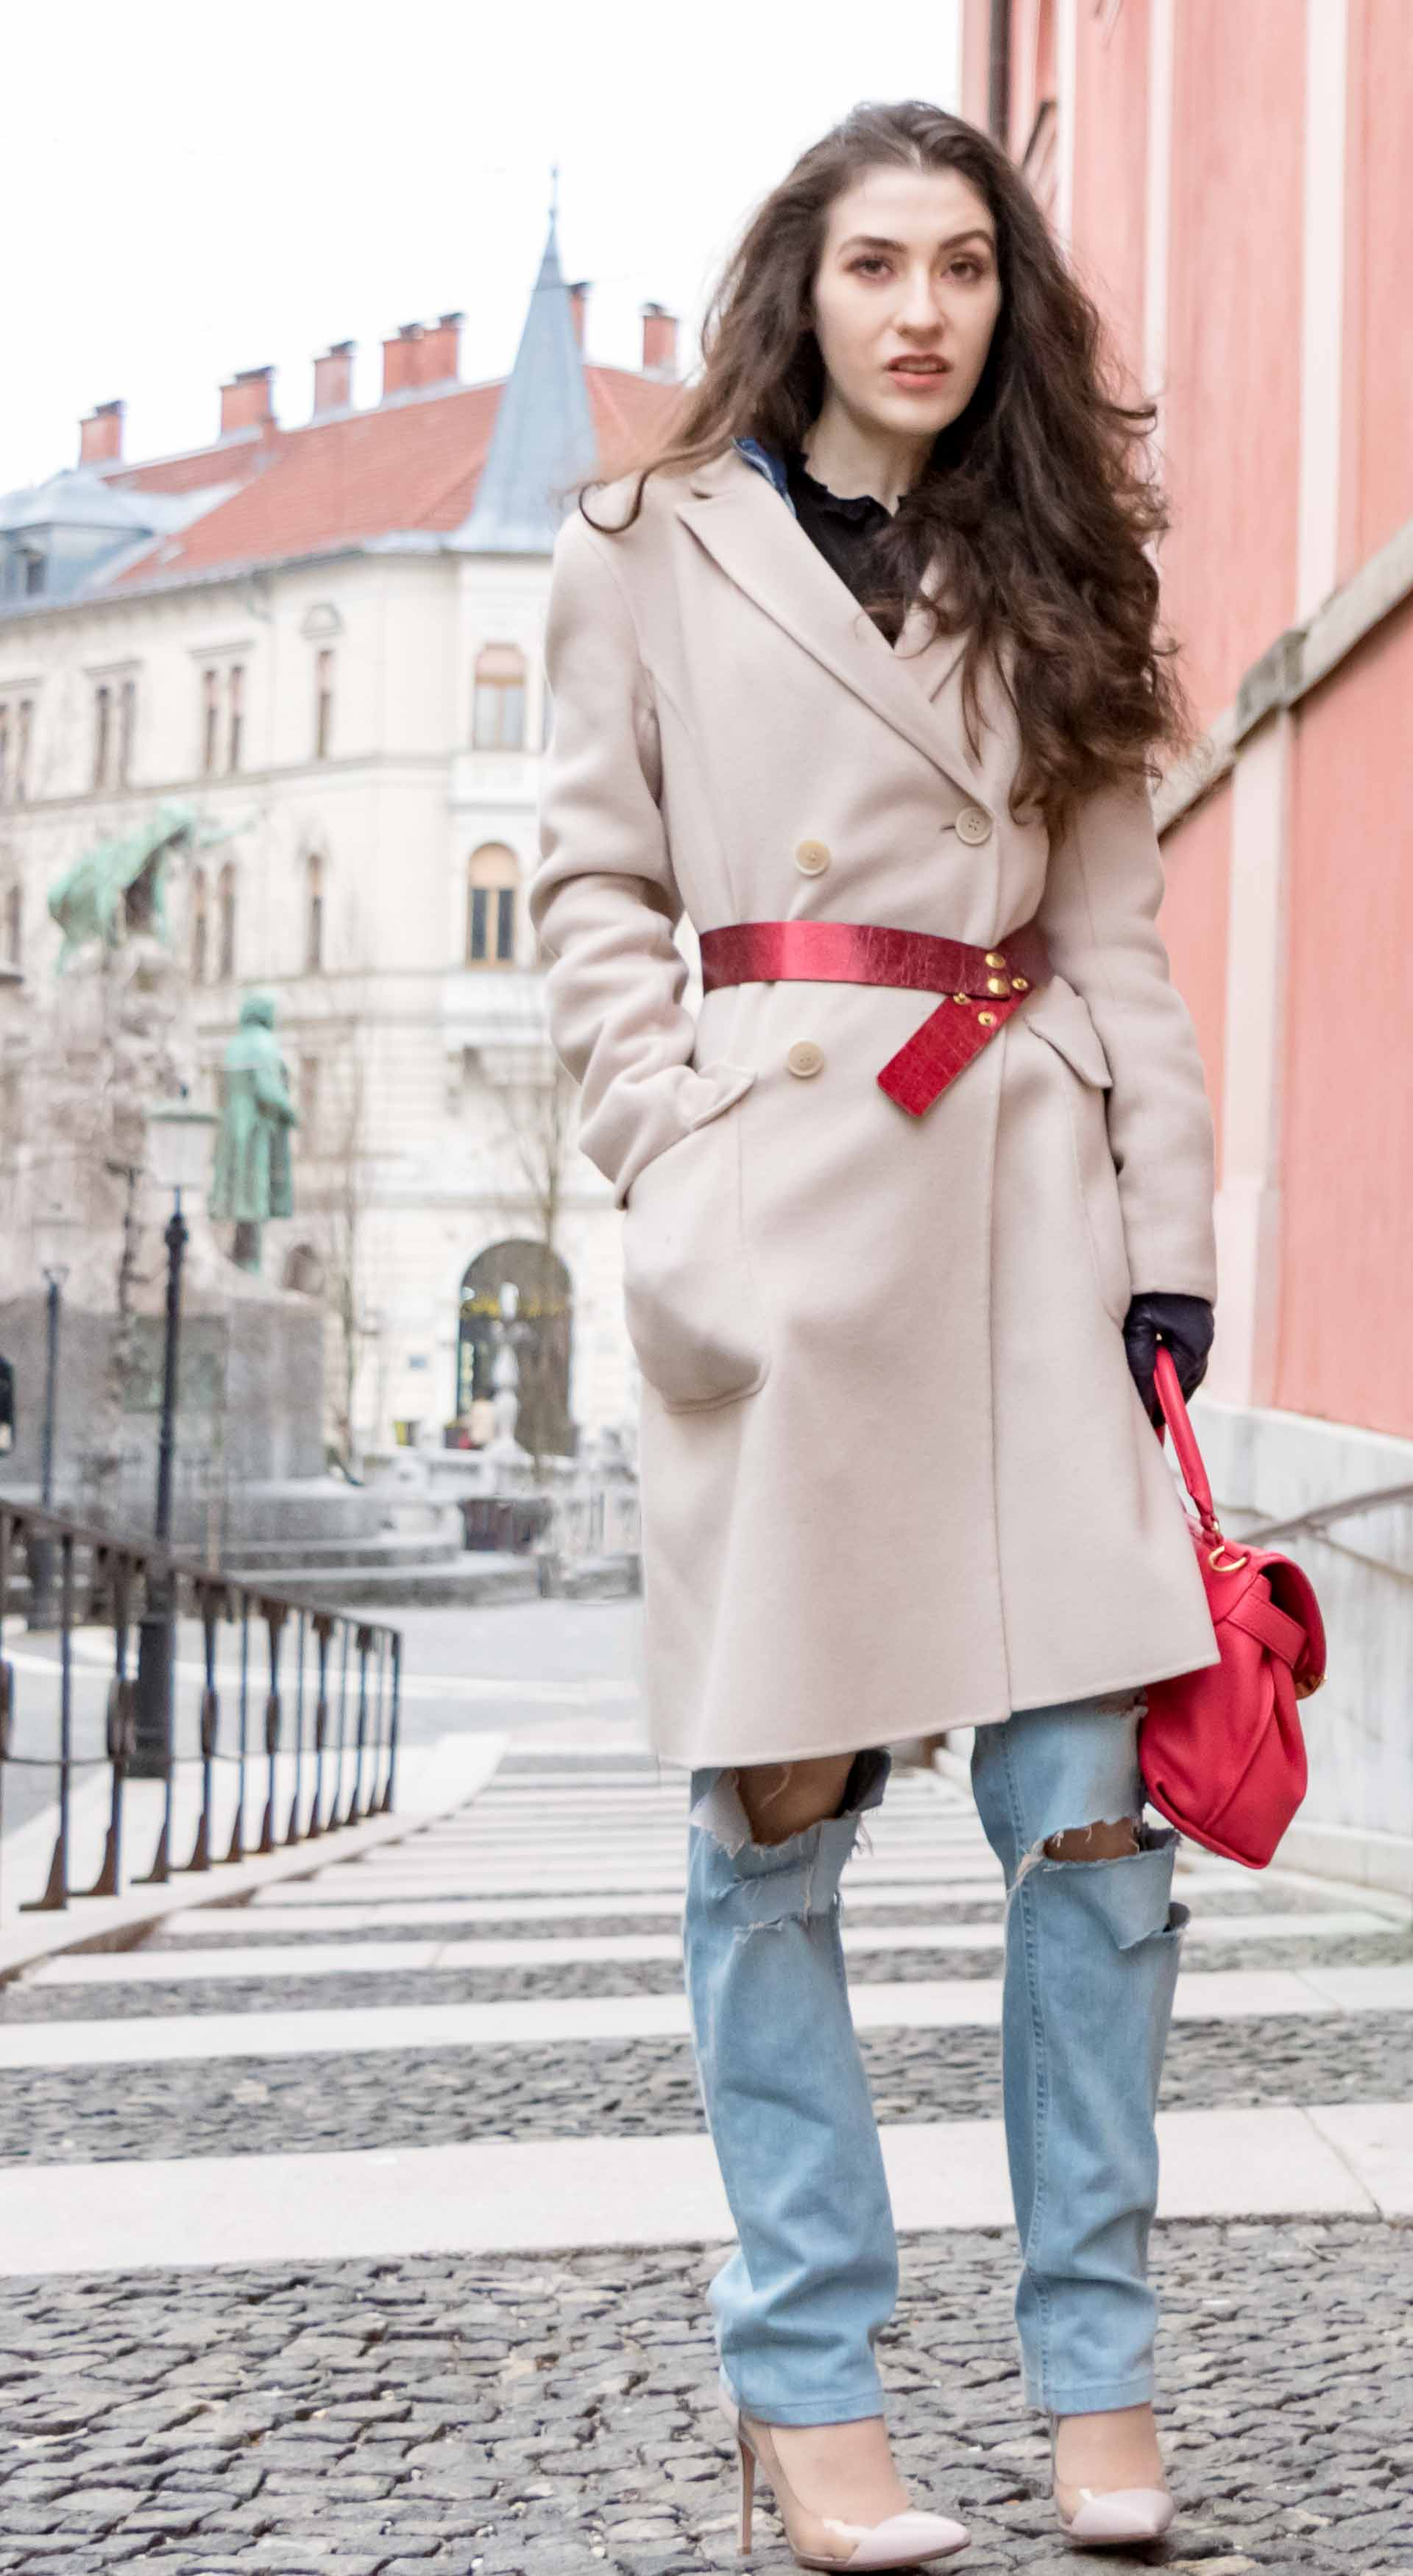 Fashion Blogger Veronika Lipar of Brunette from Wall Street wearing distressed blue Levi's jeans, off-white double breasted Weekend Maxmara coat, red dangling belt, blush Gianvito Rossi plexi pumps, See by Chloe pink top handle bag, blue leather gloves on the street of Ljubljana